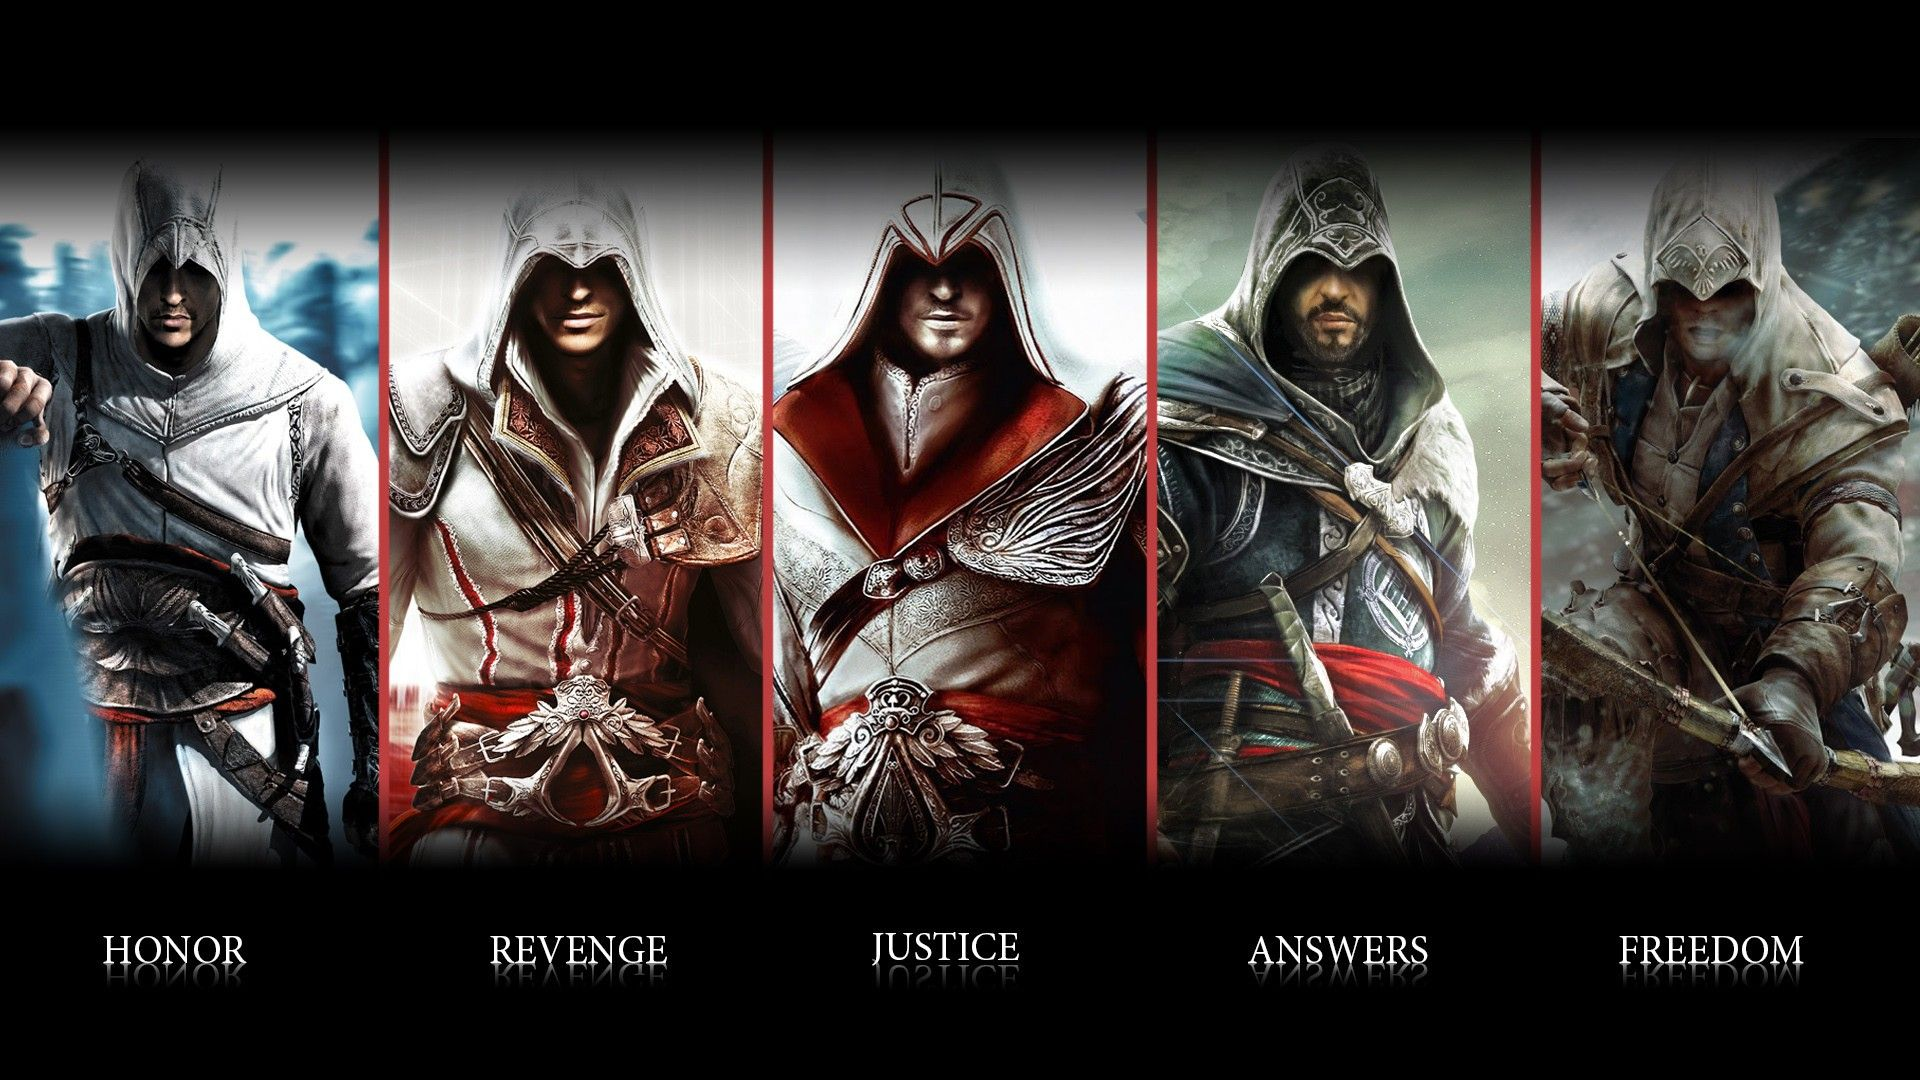 Free Download Assassins Creed Video Game Hd Wallpaper Fullhdwpp Full Hd 1920x1080 For Your Desktop Mobile Tablet Explore 44 Assassin S Creed Wallpaper 1920x1080 Assassin S Creed Backgrounds And Wallpapers Assassin S